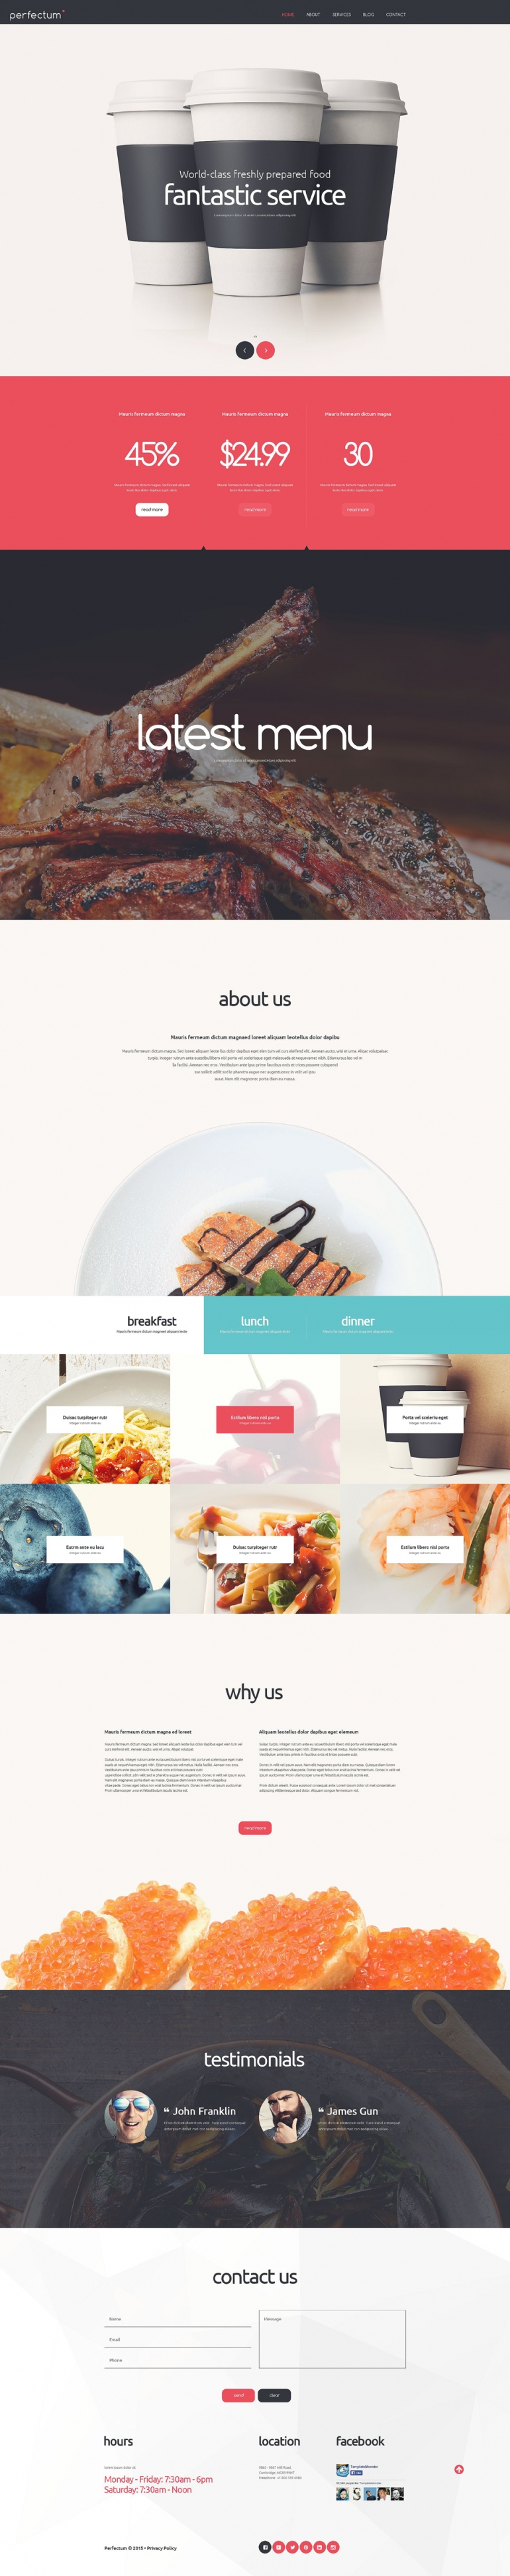 15 Templates With Awesome Hero Headers